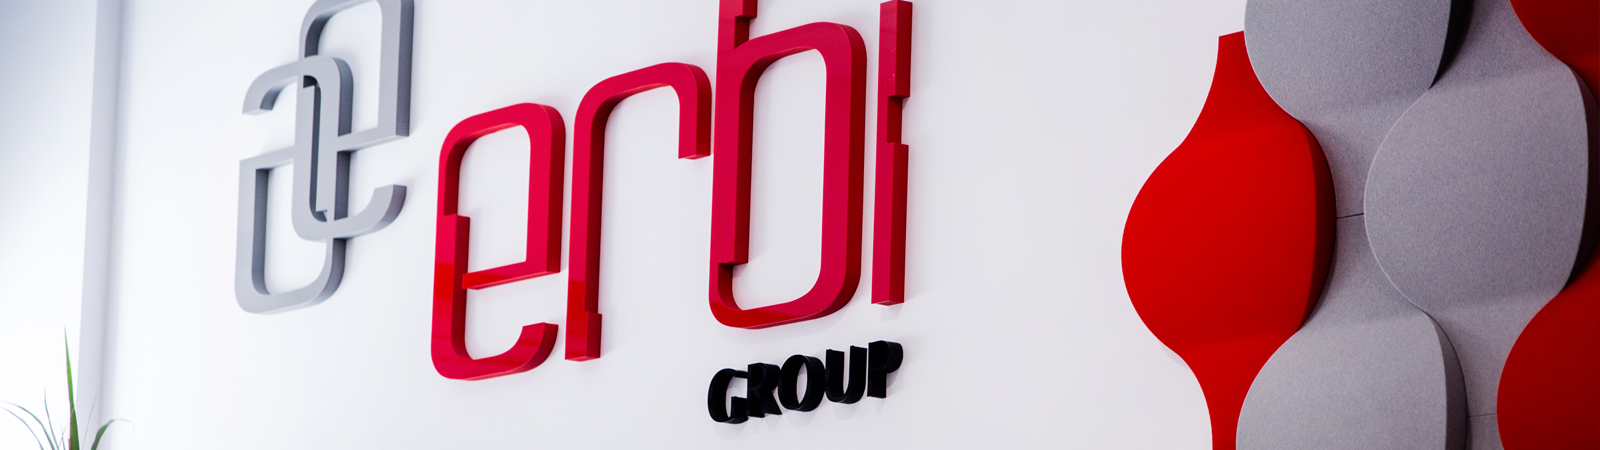 ERBI Group